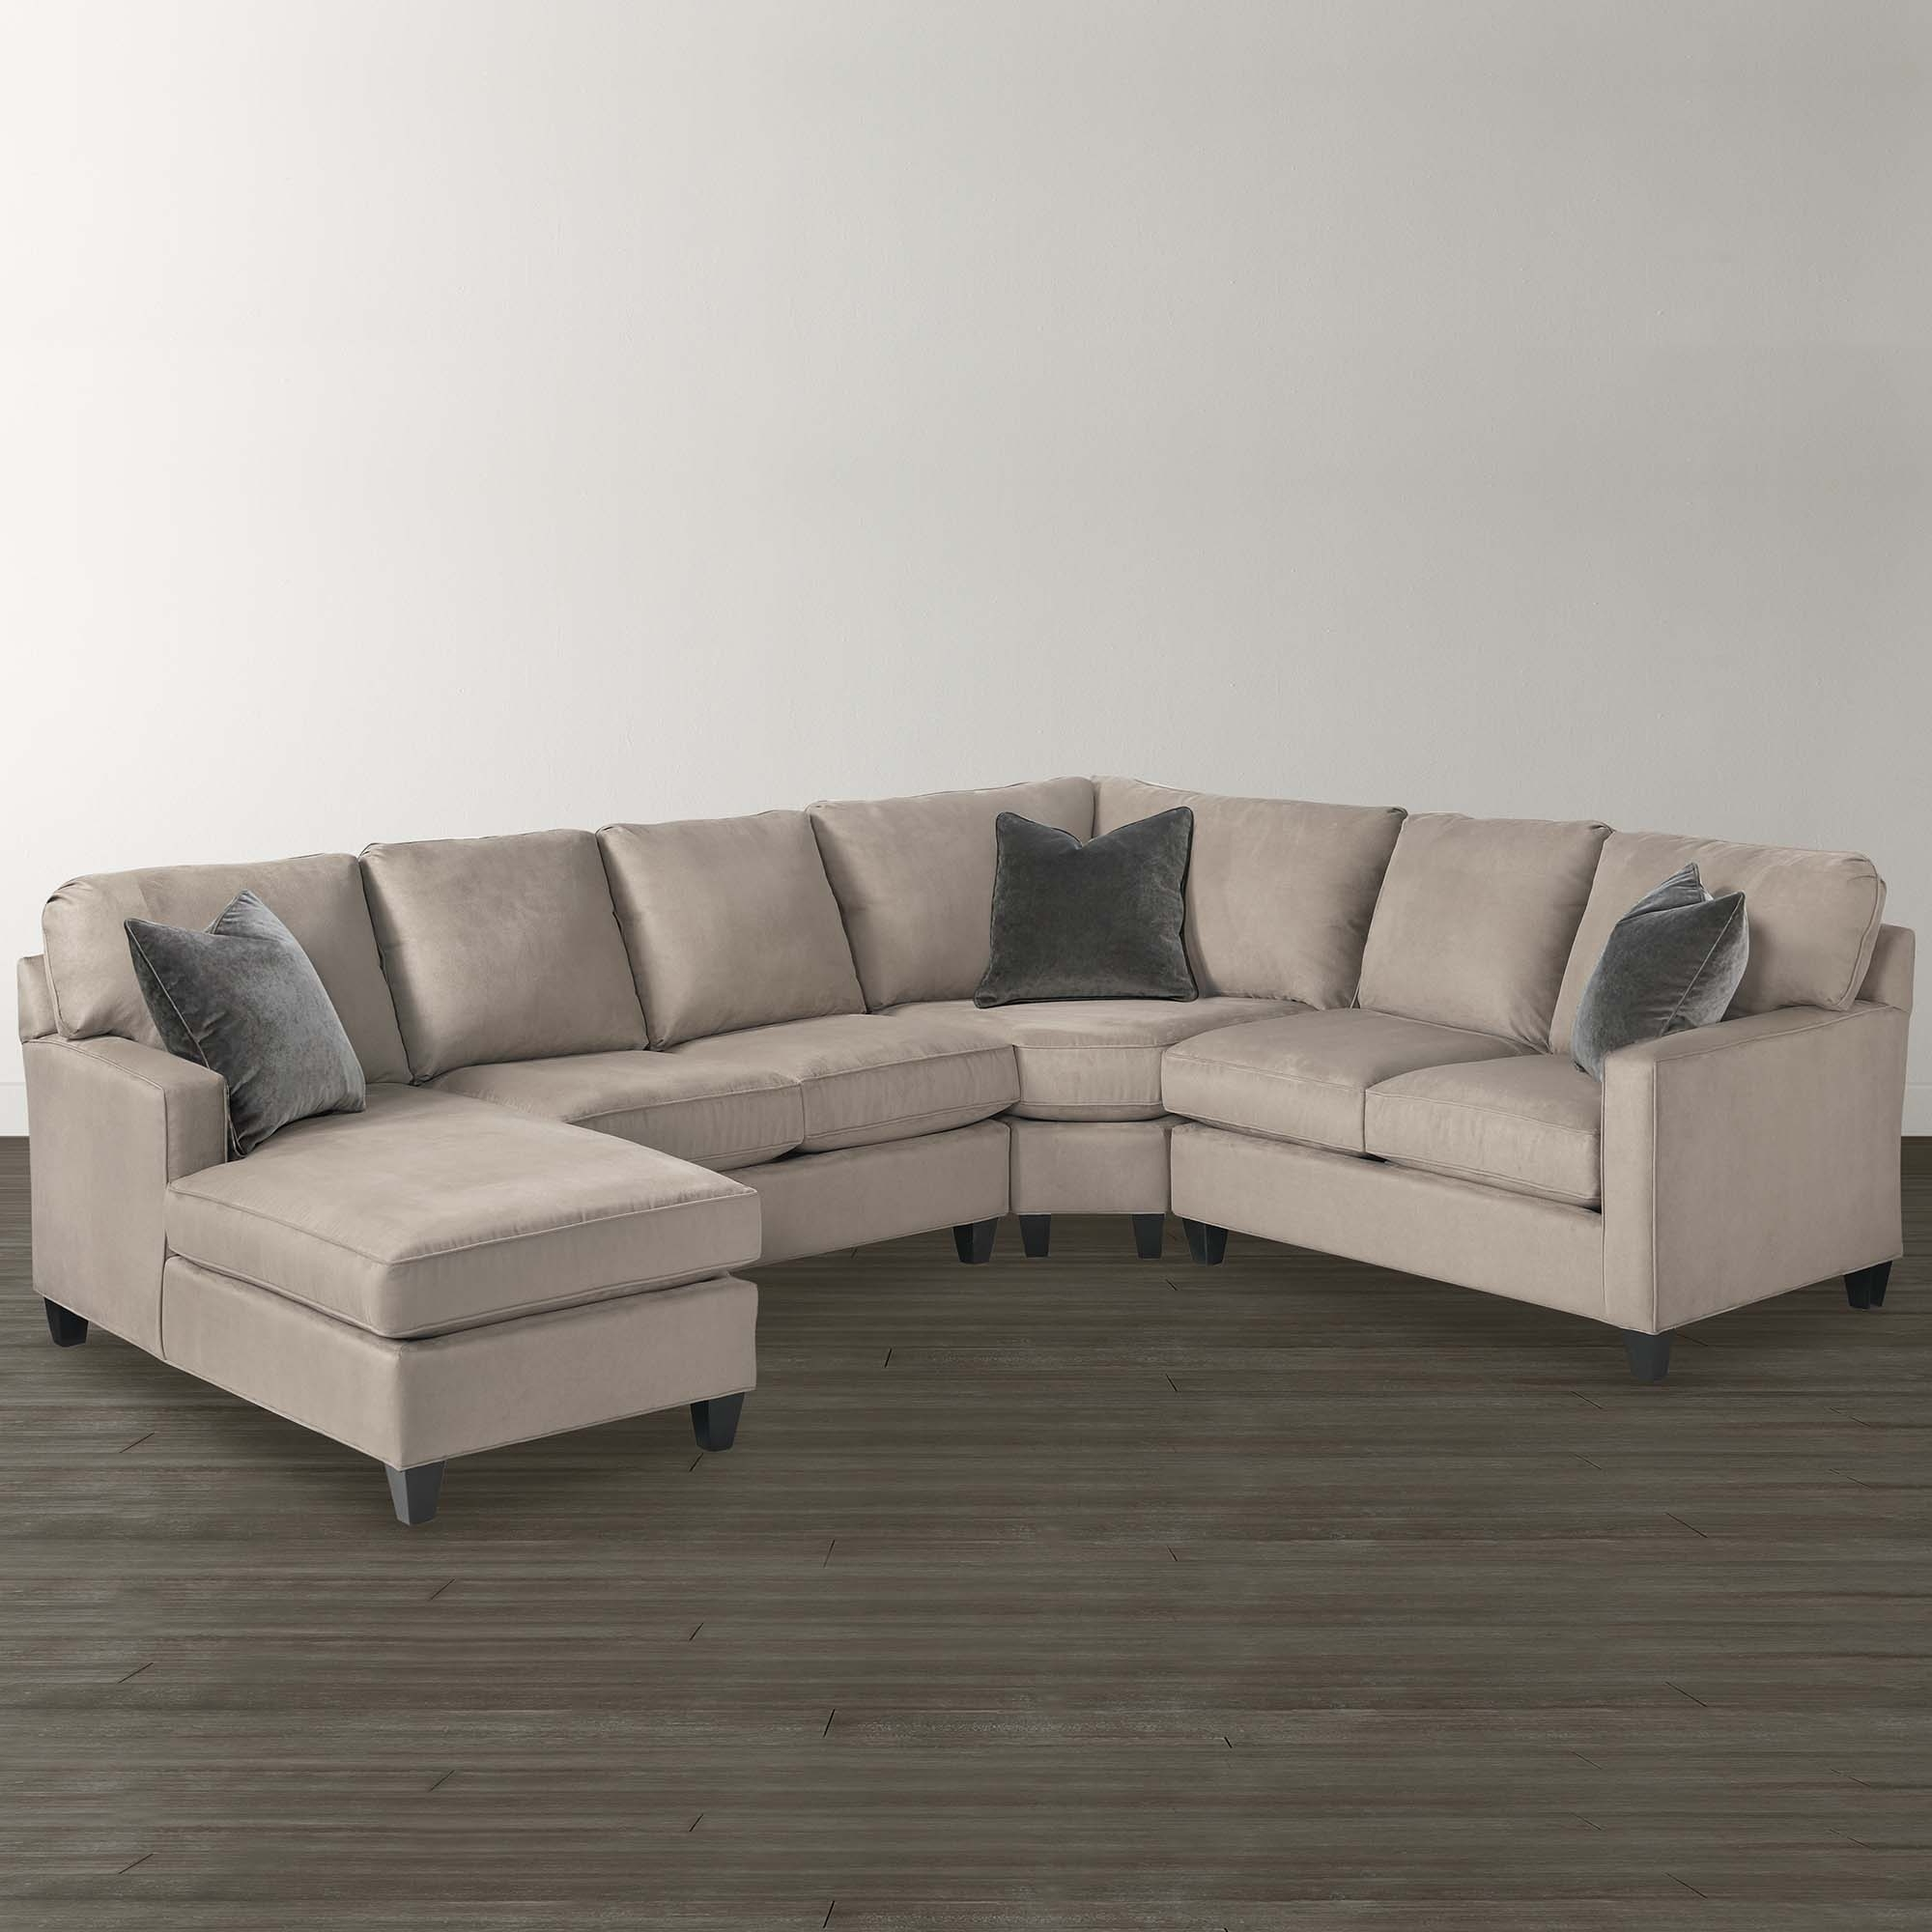 Dania Sectional Sofas Pertaining To Newest Sofa : Sofa Leather Sectional U Shape Creambassett Shaped (View 10 of 15)